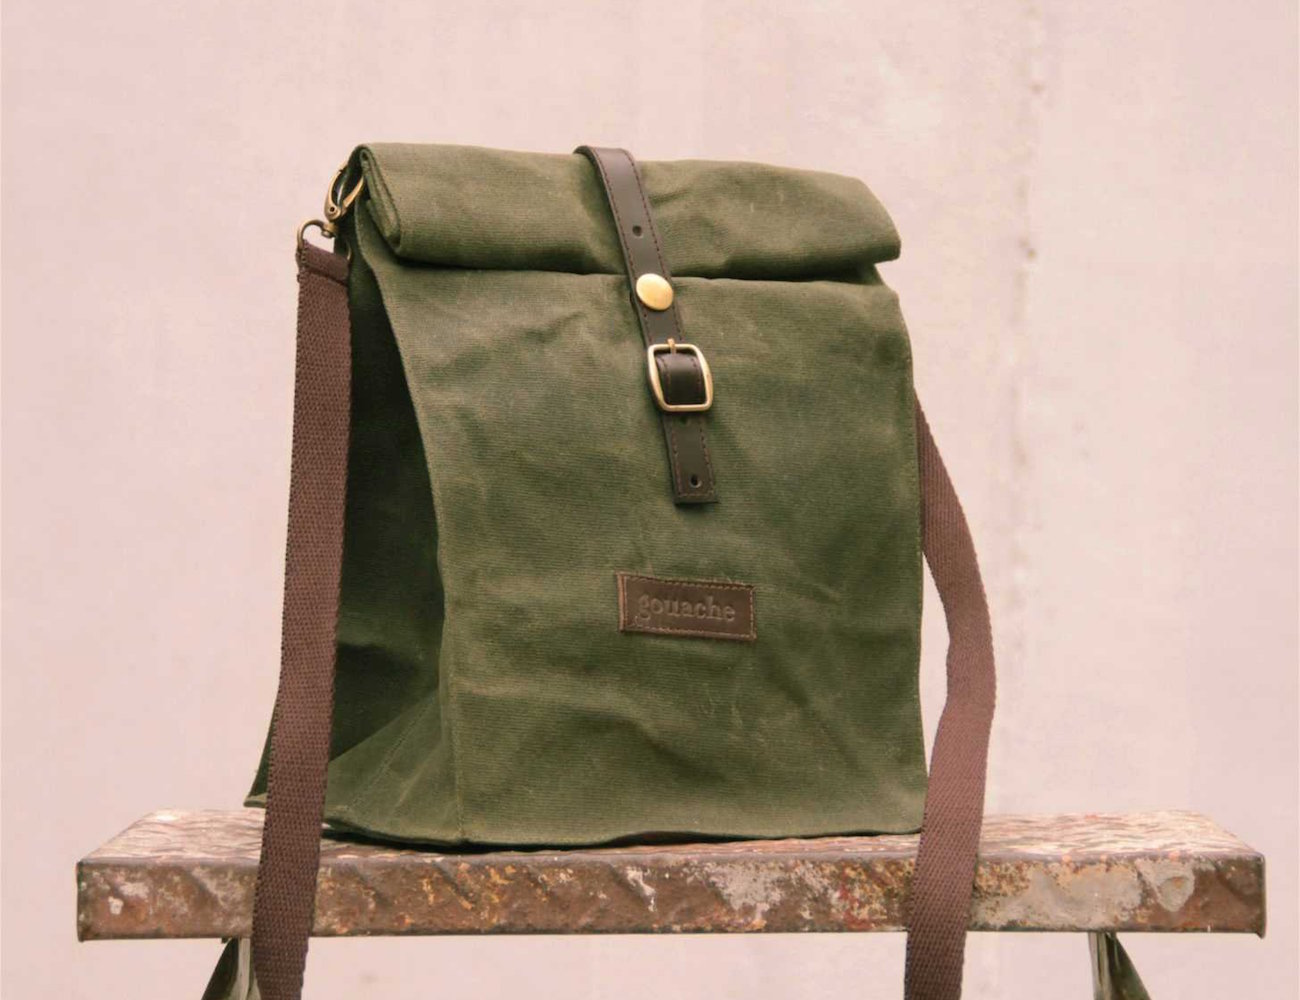 Waxed Canvas Lunch Bag by Gouache